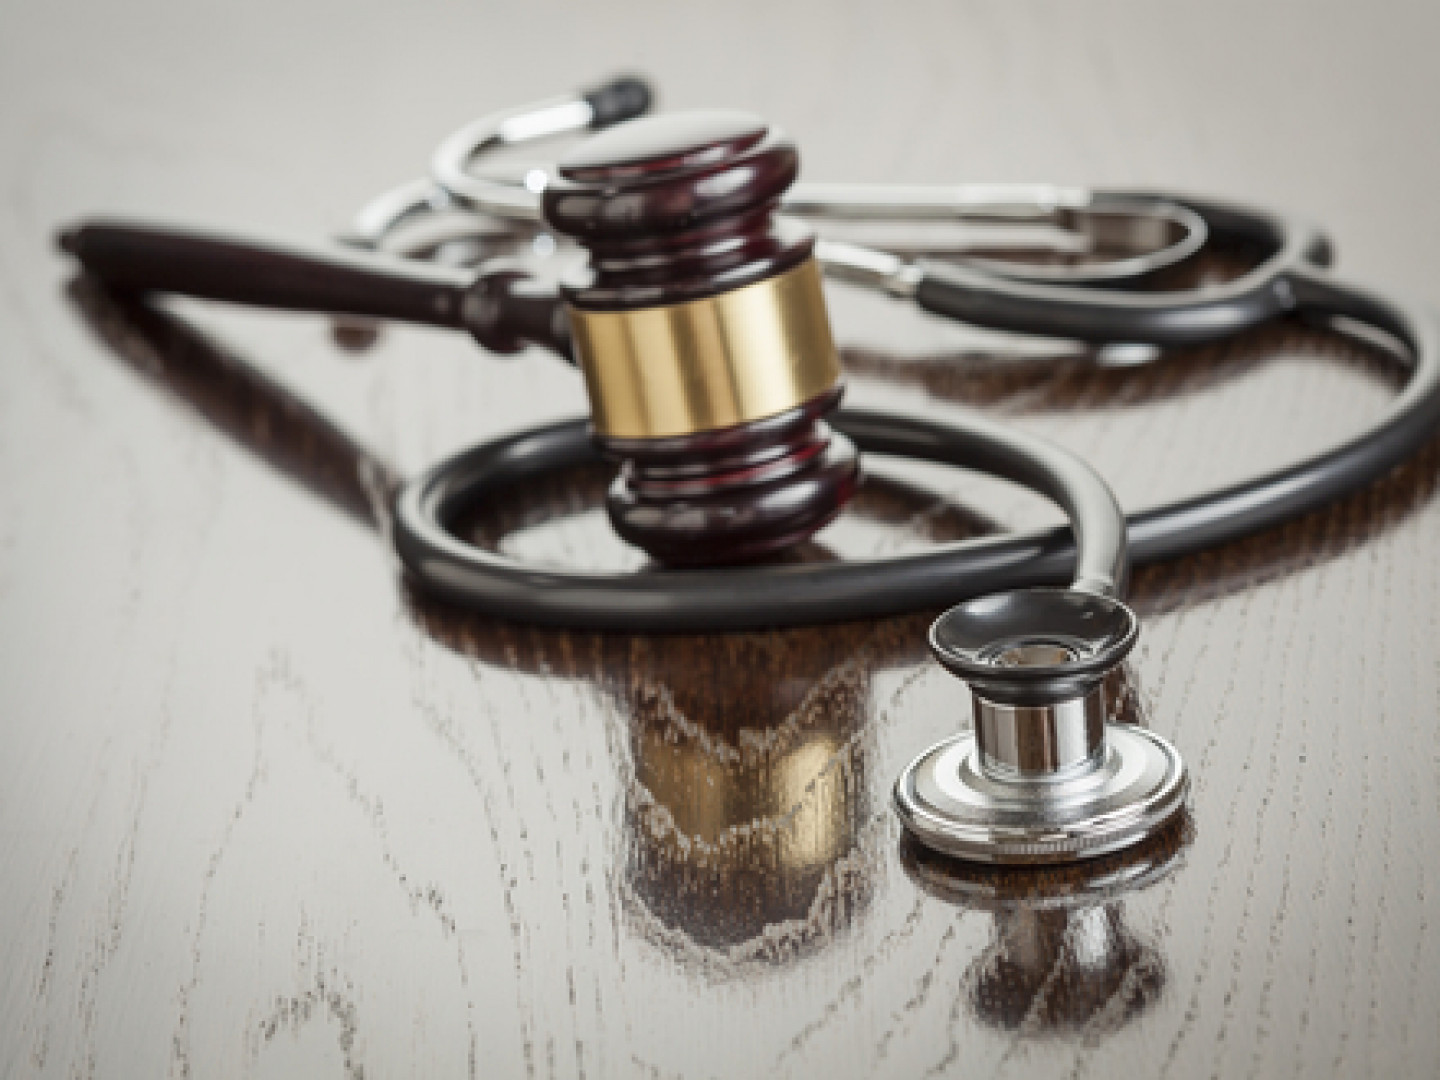 Stethoscope on a table wrapped around a gavel